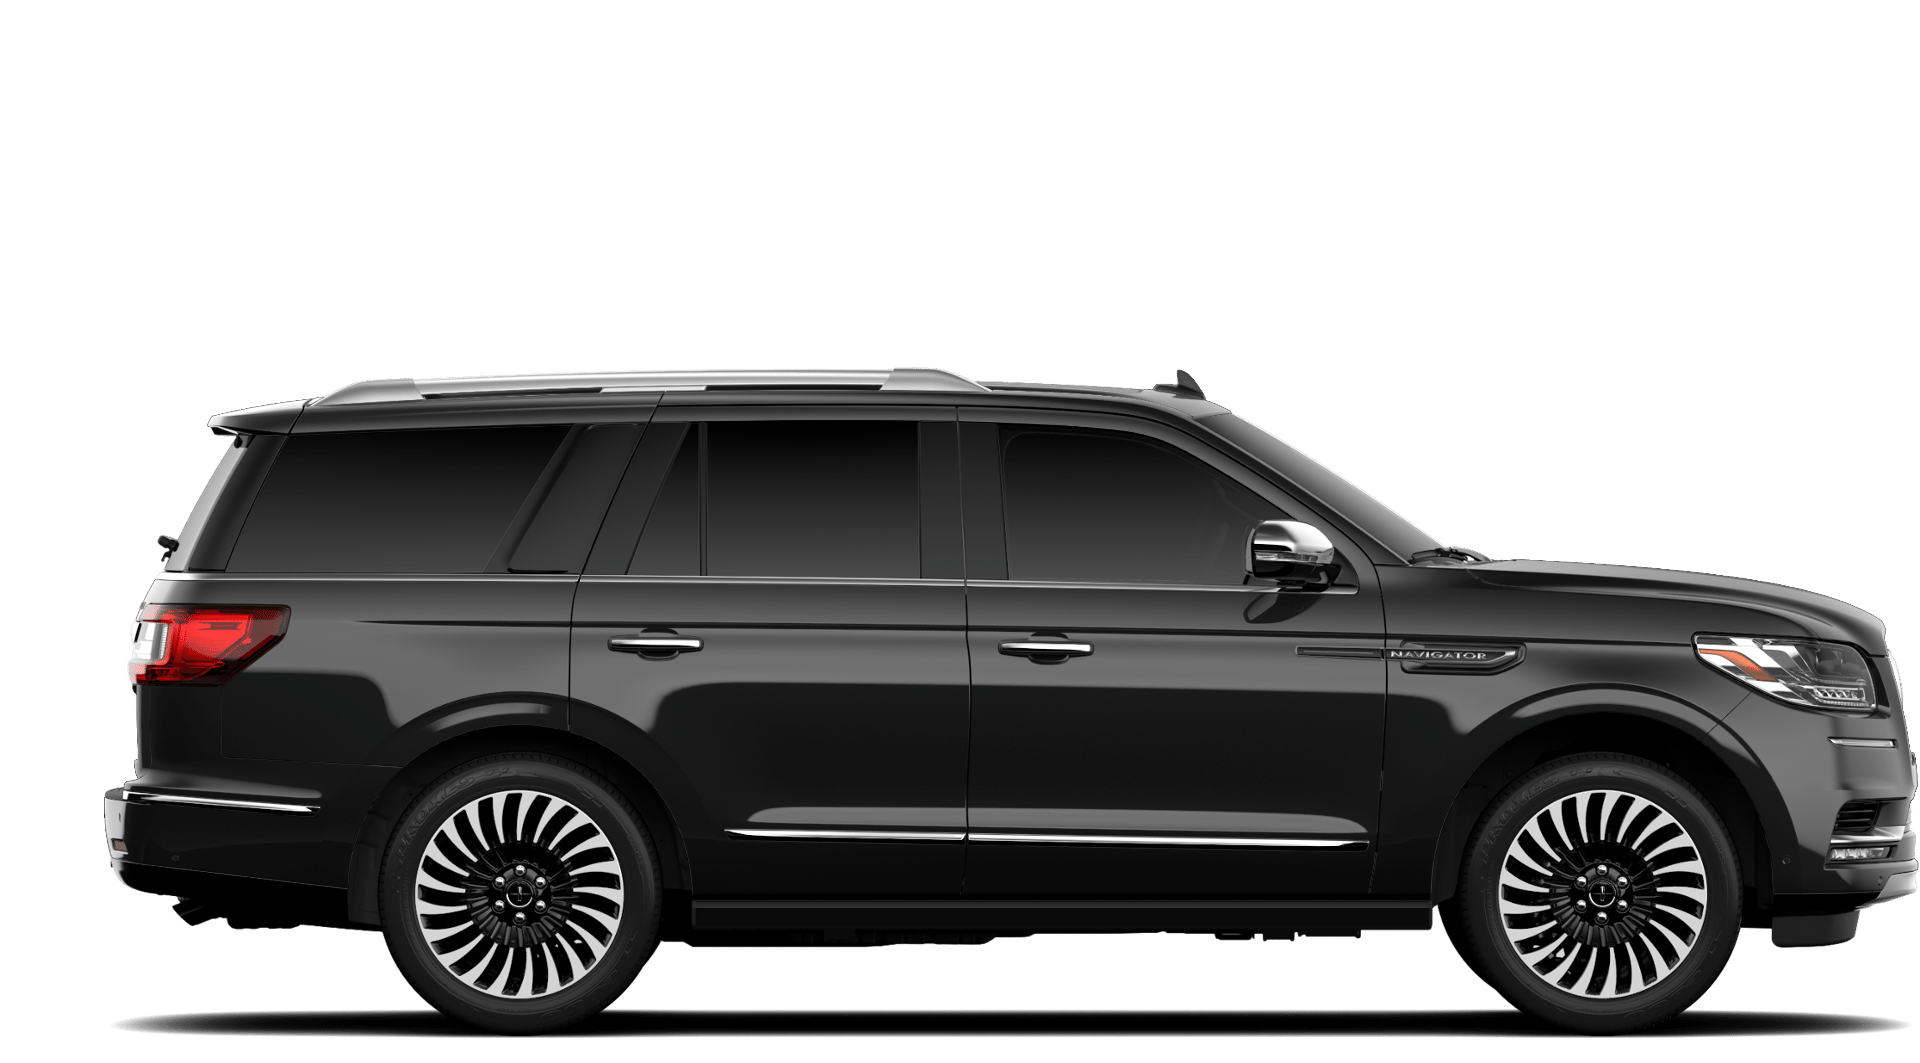 2019 Lincoln Navigator Black Label Black Exterior Side Profile